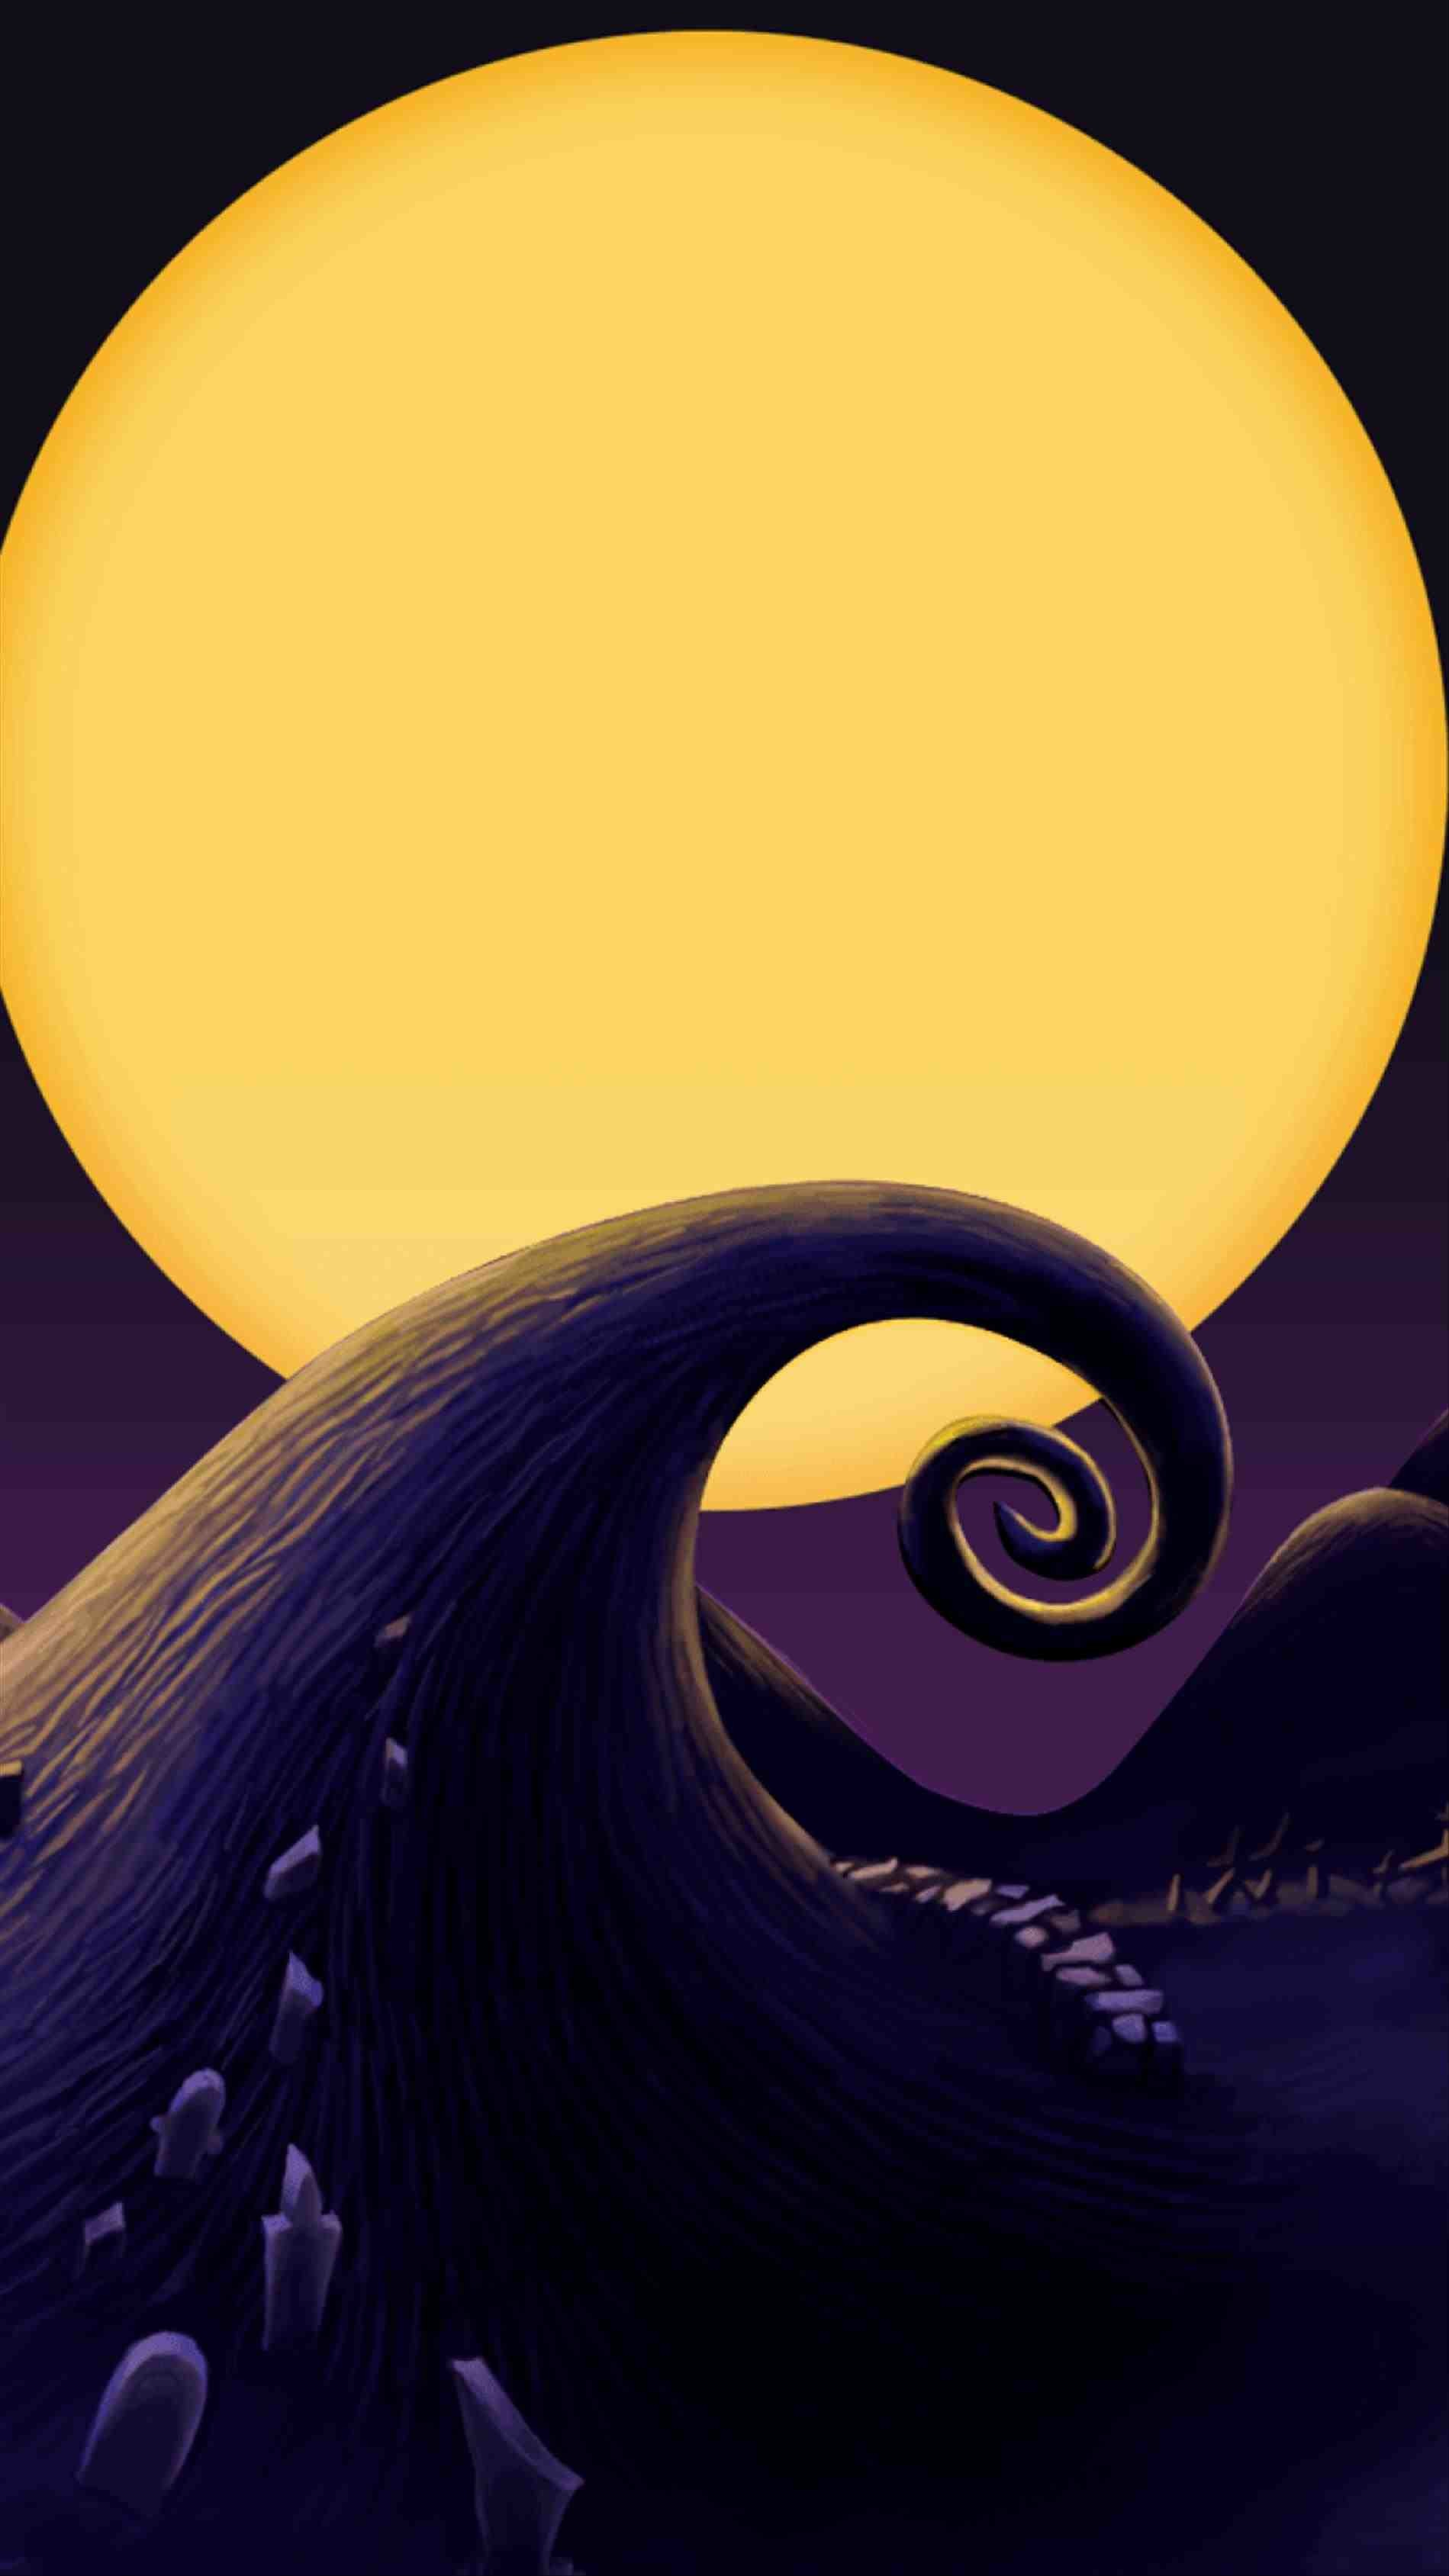 Nightmare Before Christmas Hd Wallpaper.Nightmare Before Christmas Wallpapers Hd 72 Background